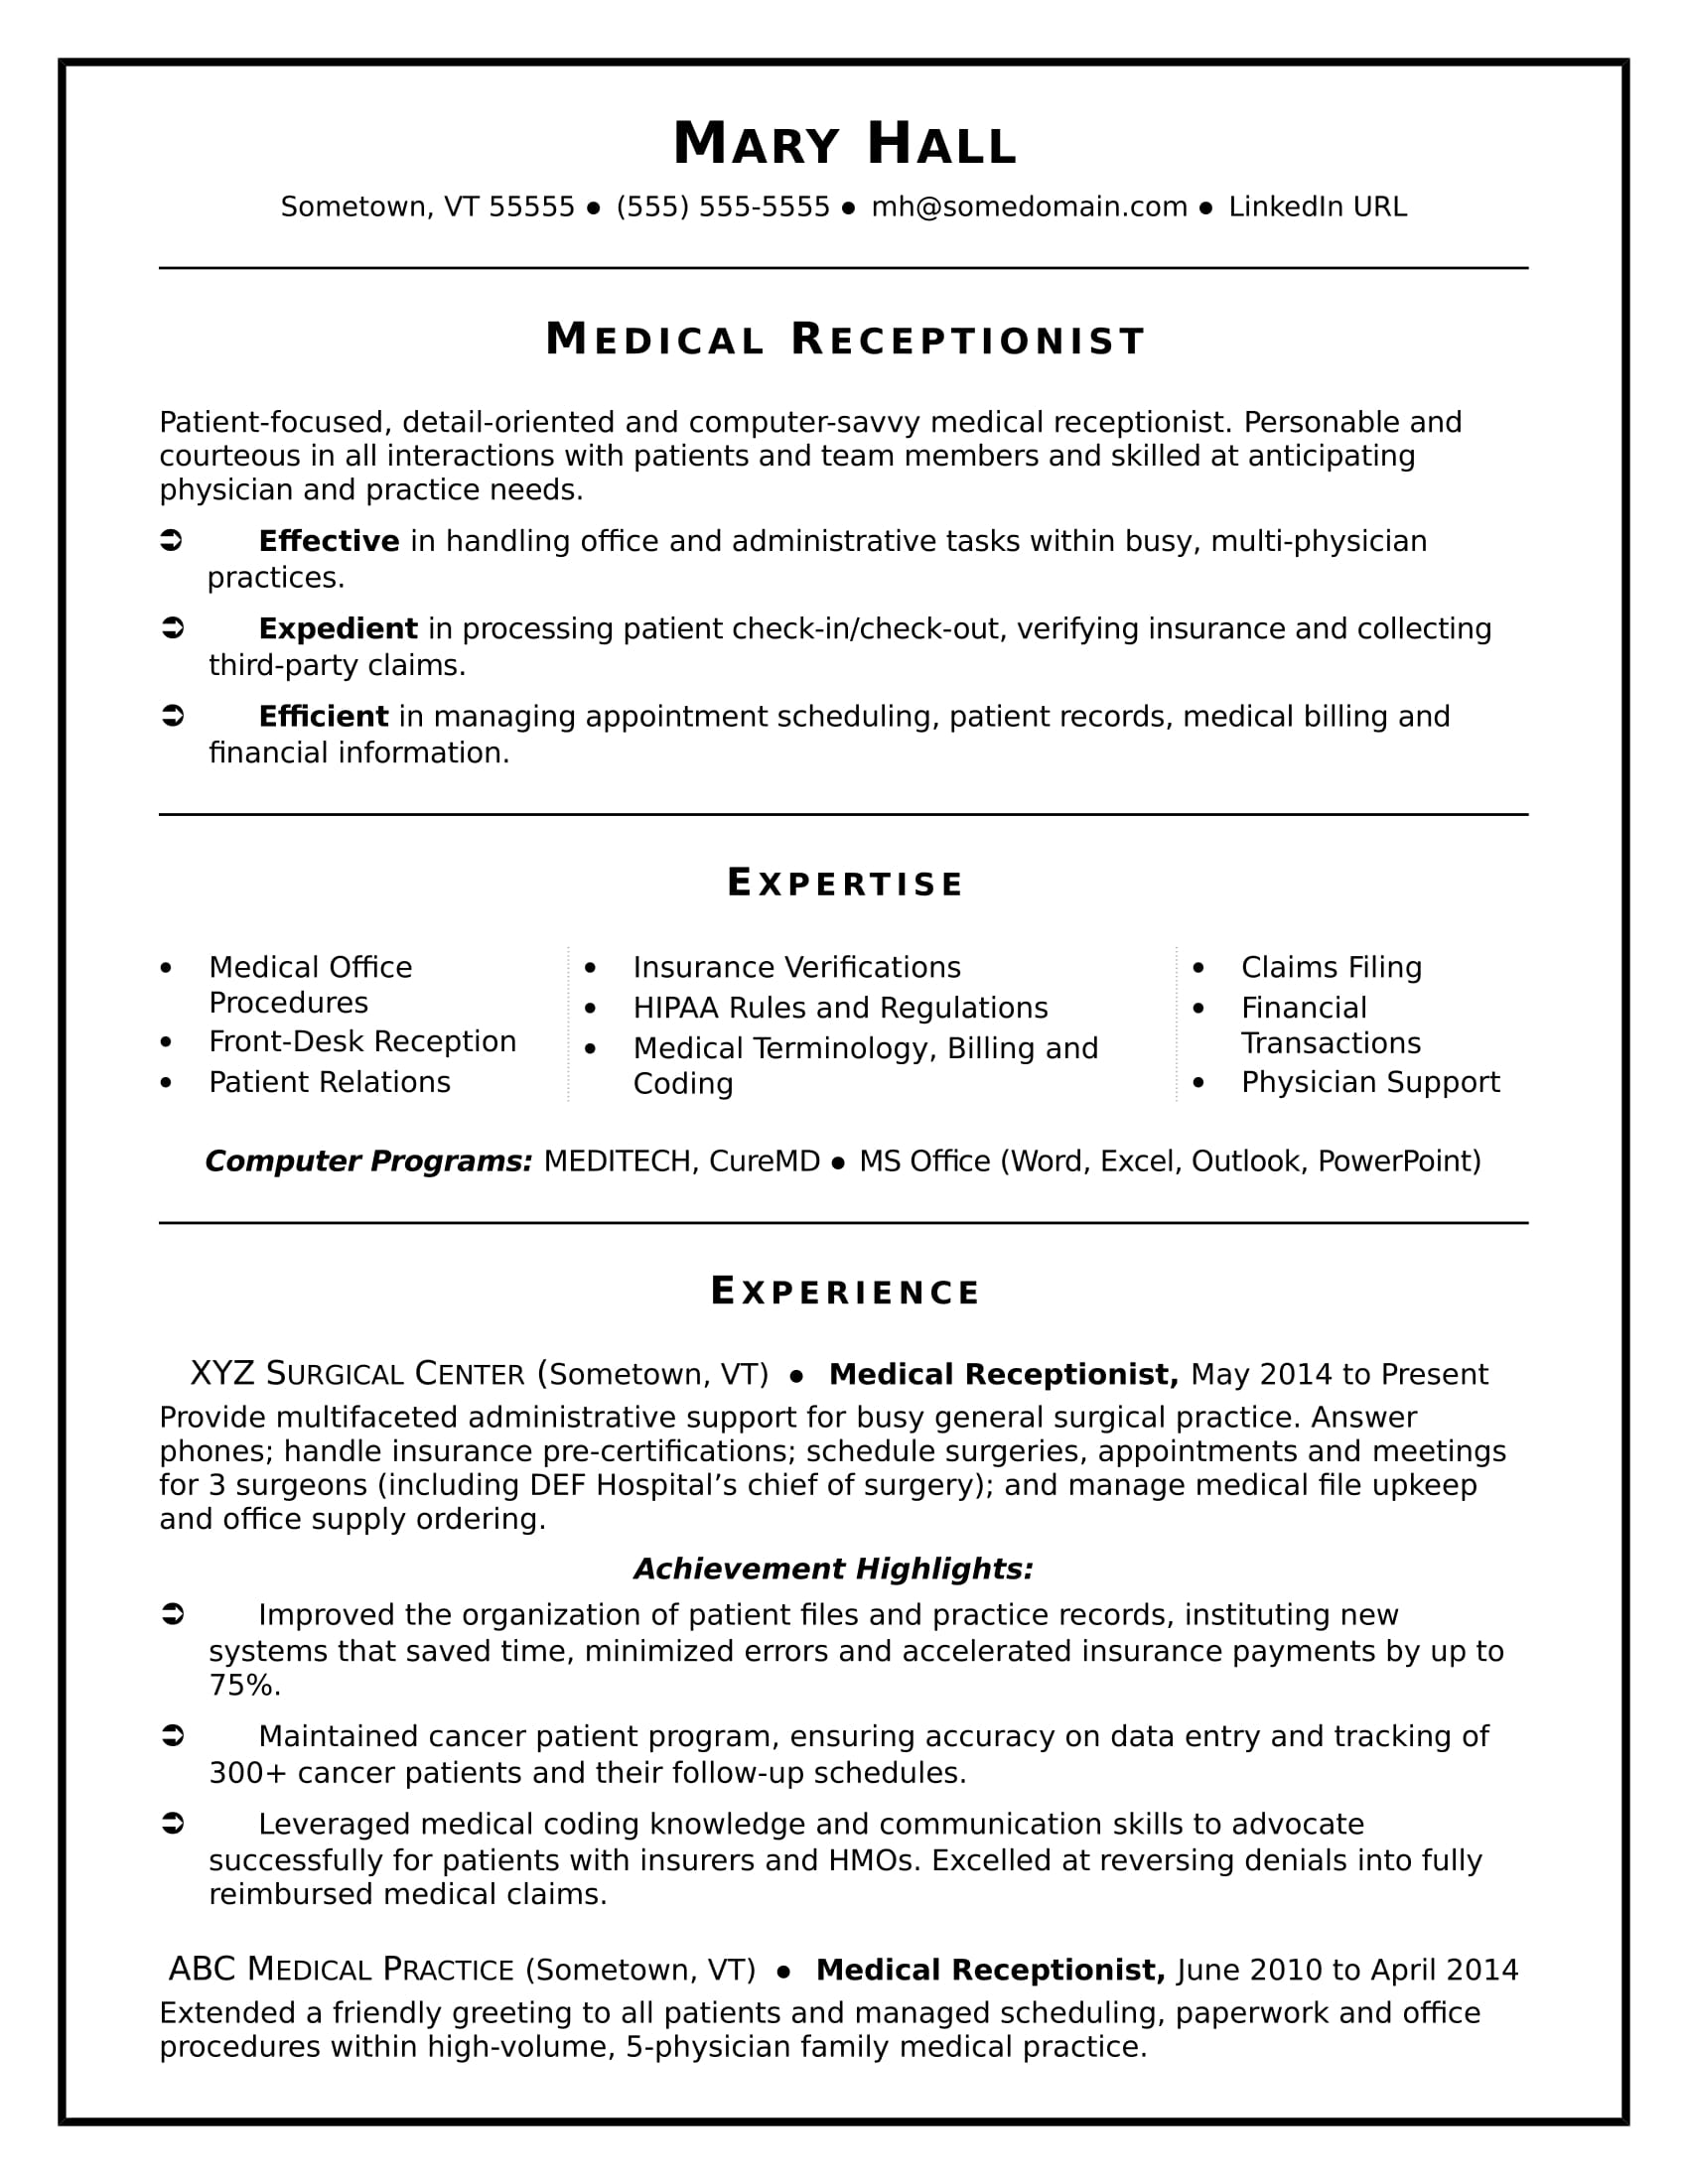 Medical Receptionist Resume Sample  Receptionist Responsibilities Resume